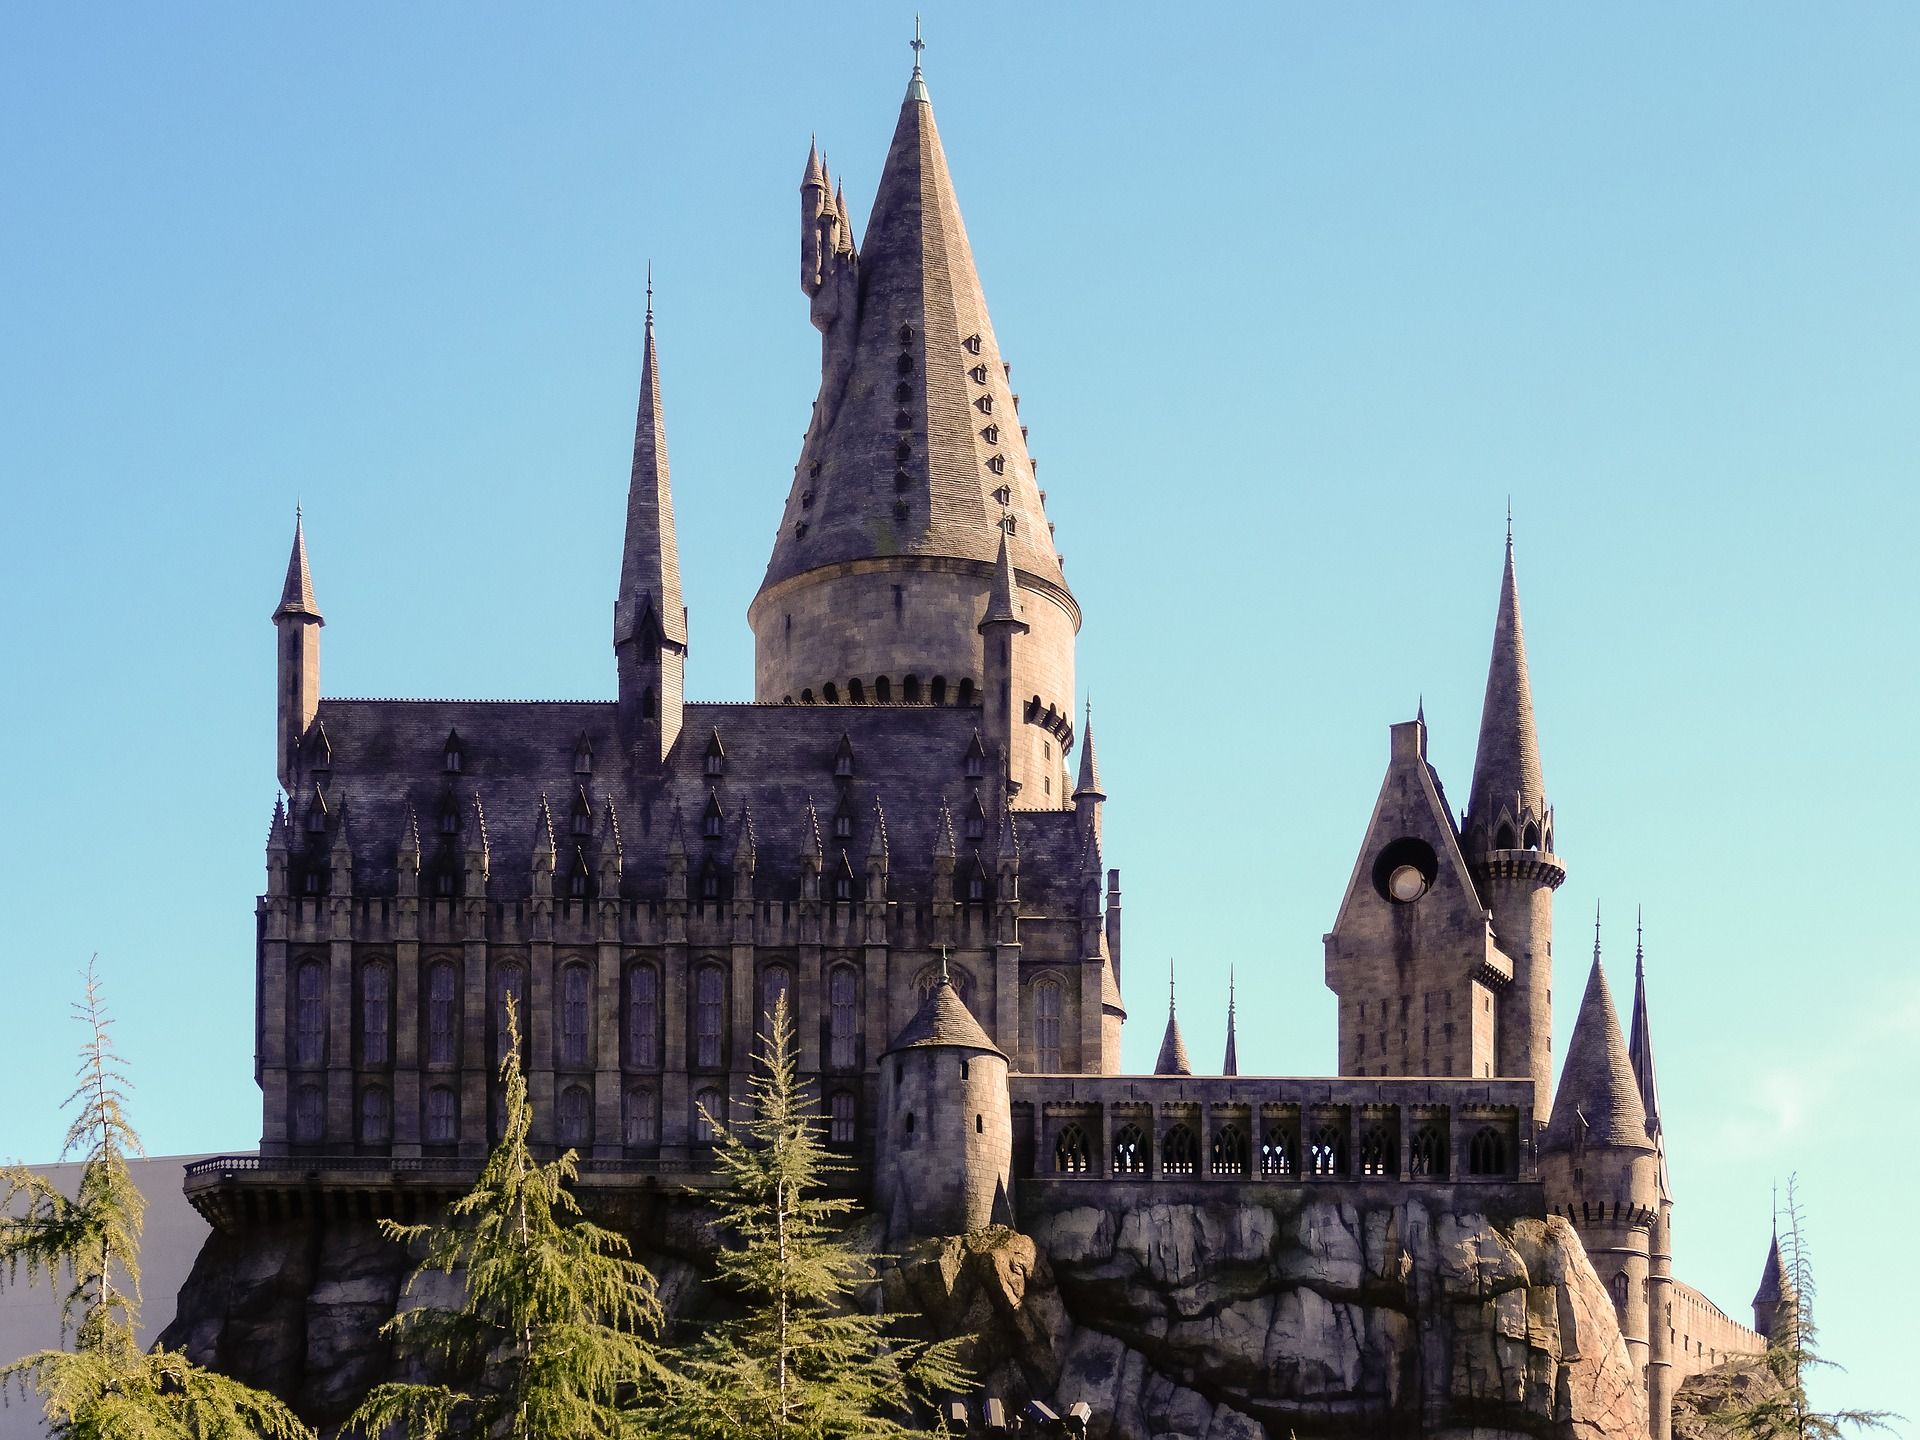 Tagesreise nach London - The Making of Harry Potter Hogwarts